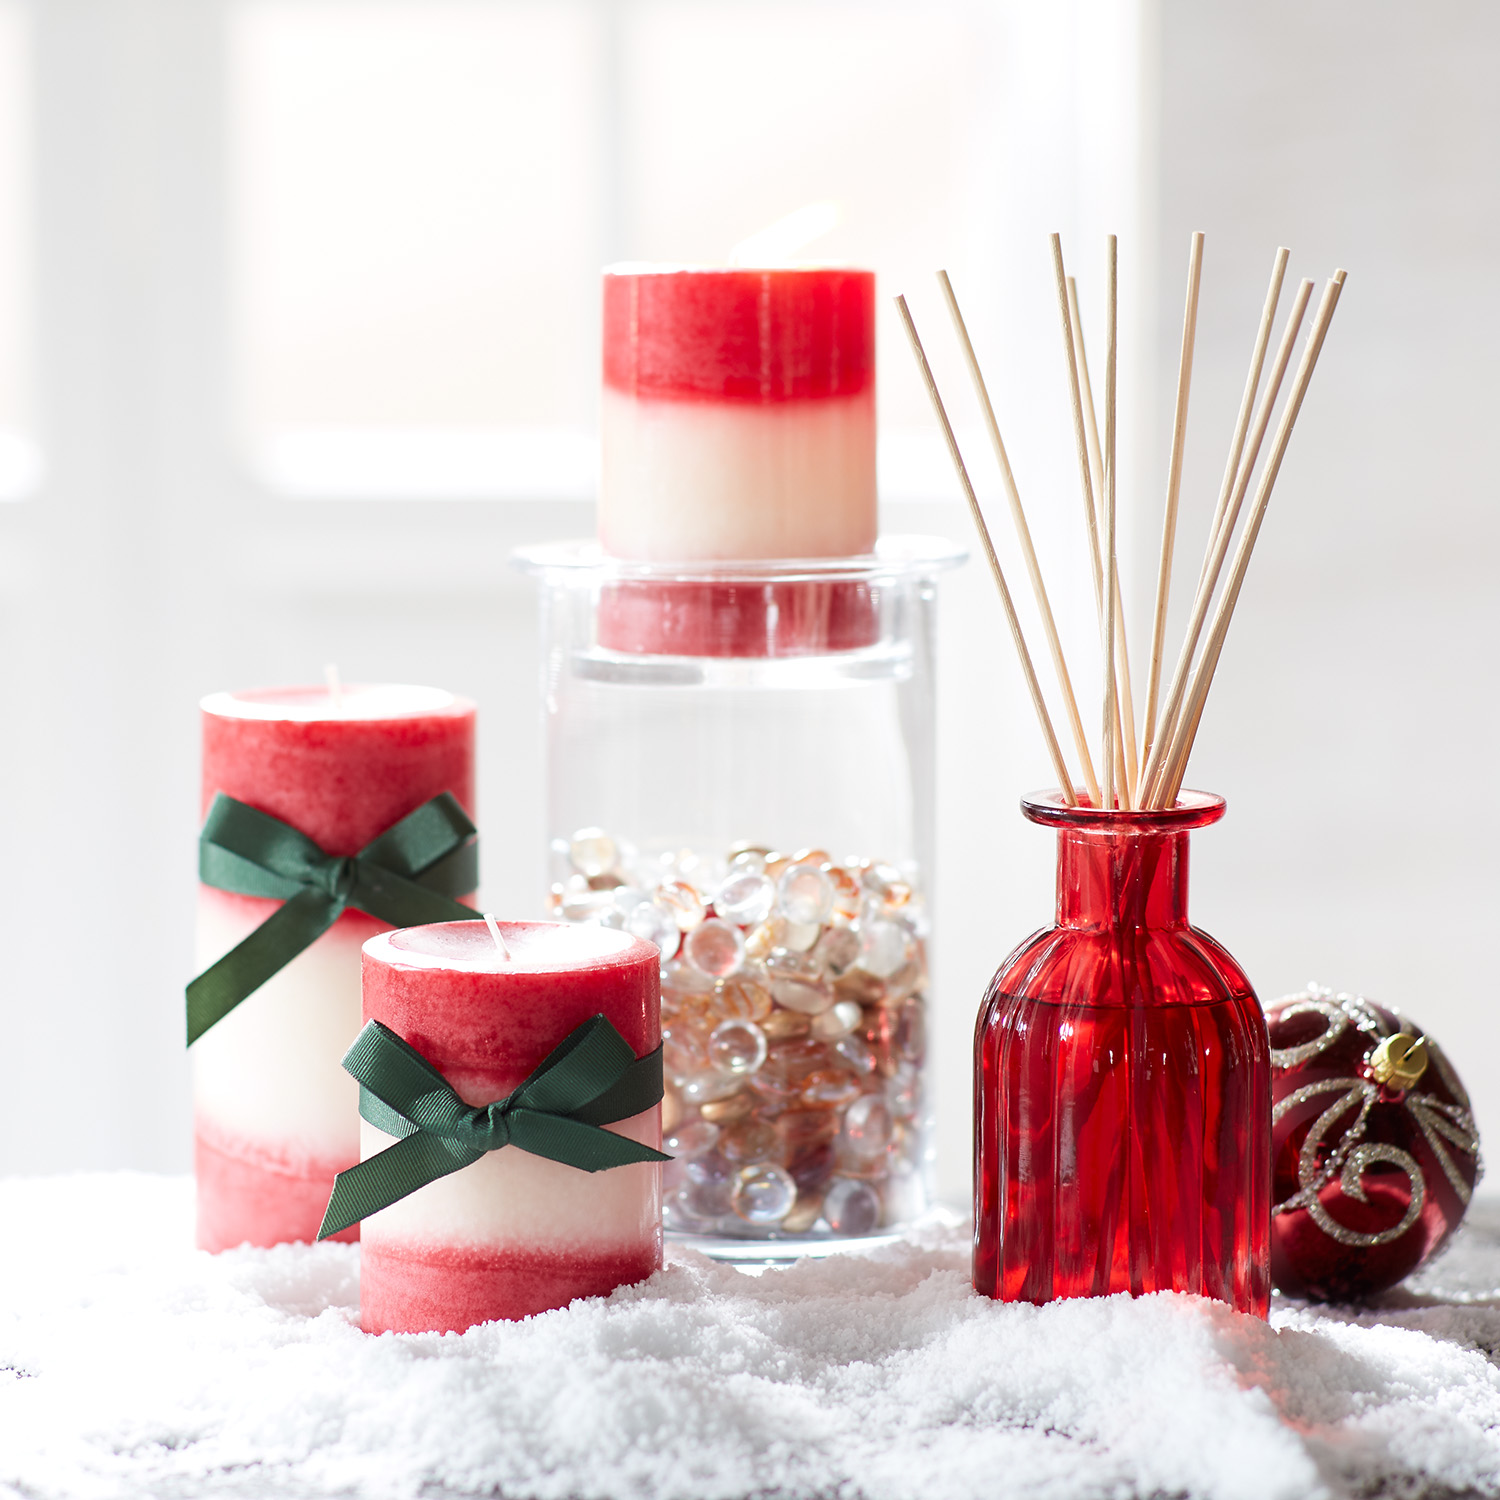 Candy Apple Reed Diffuser